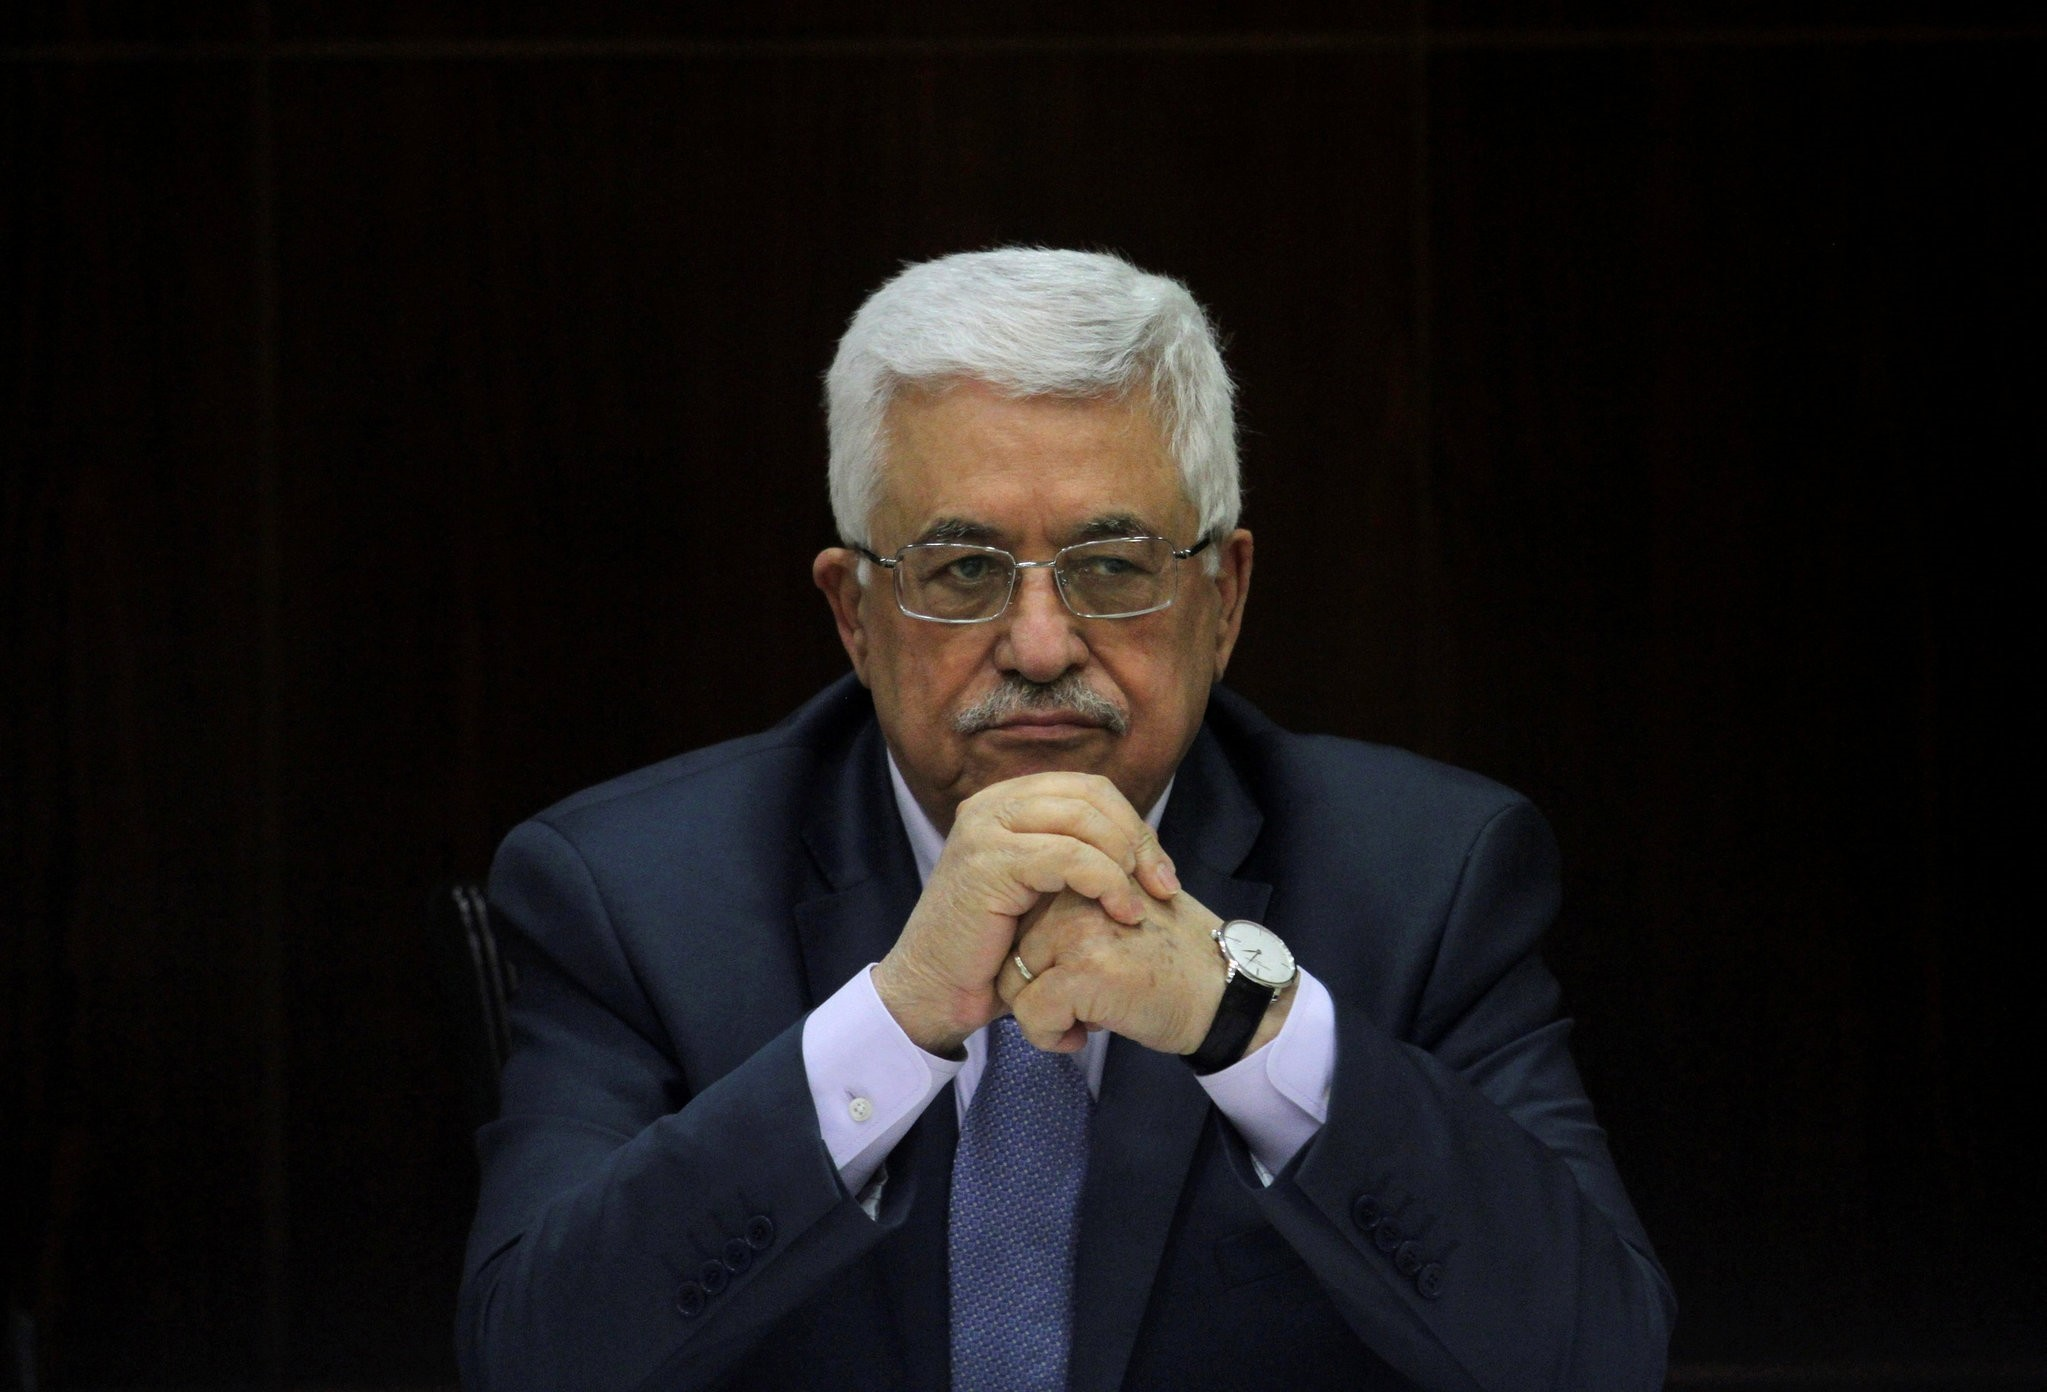 Palestinian President Mahmoud Abbas heads a Palestinian cabinet meeting in the West Bank city of Ramallah July 28, 2013. (REUTERS Photo)